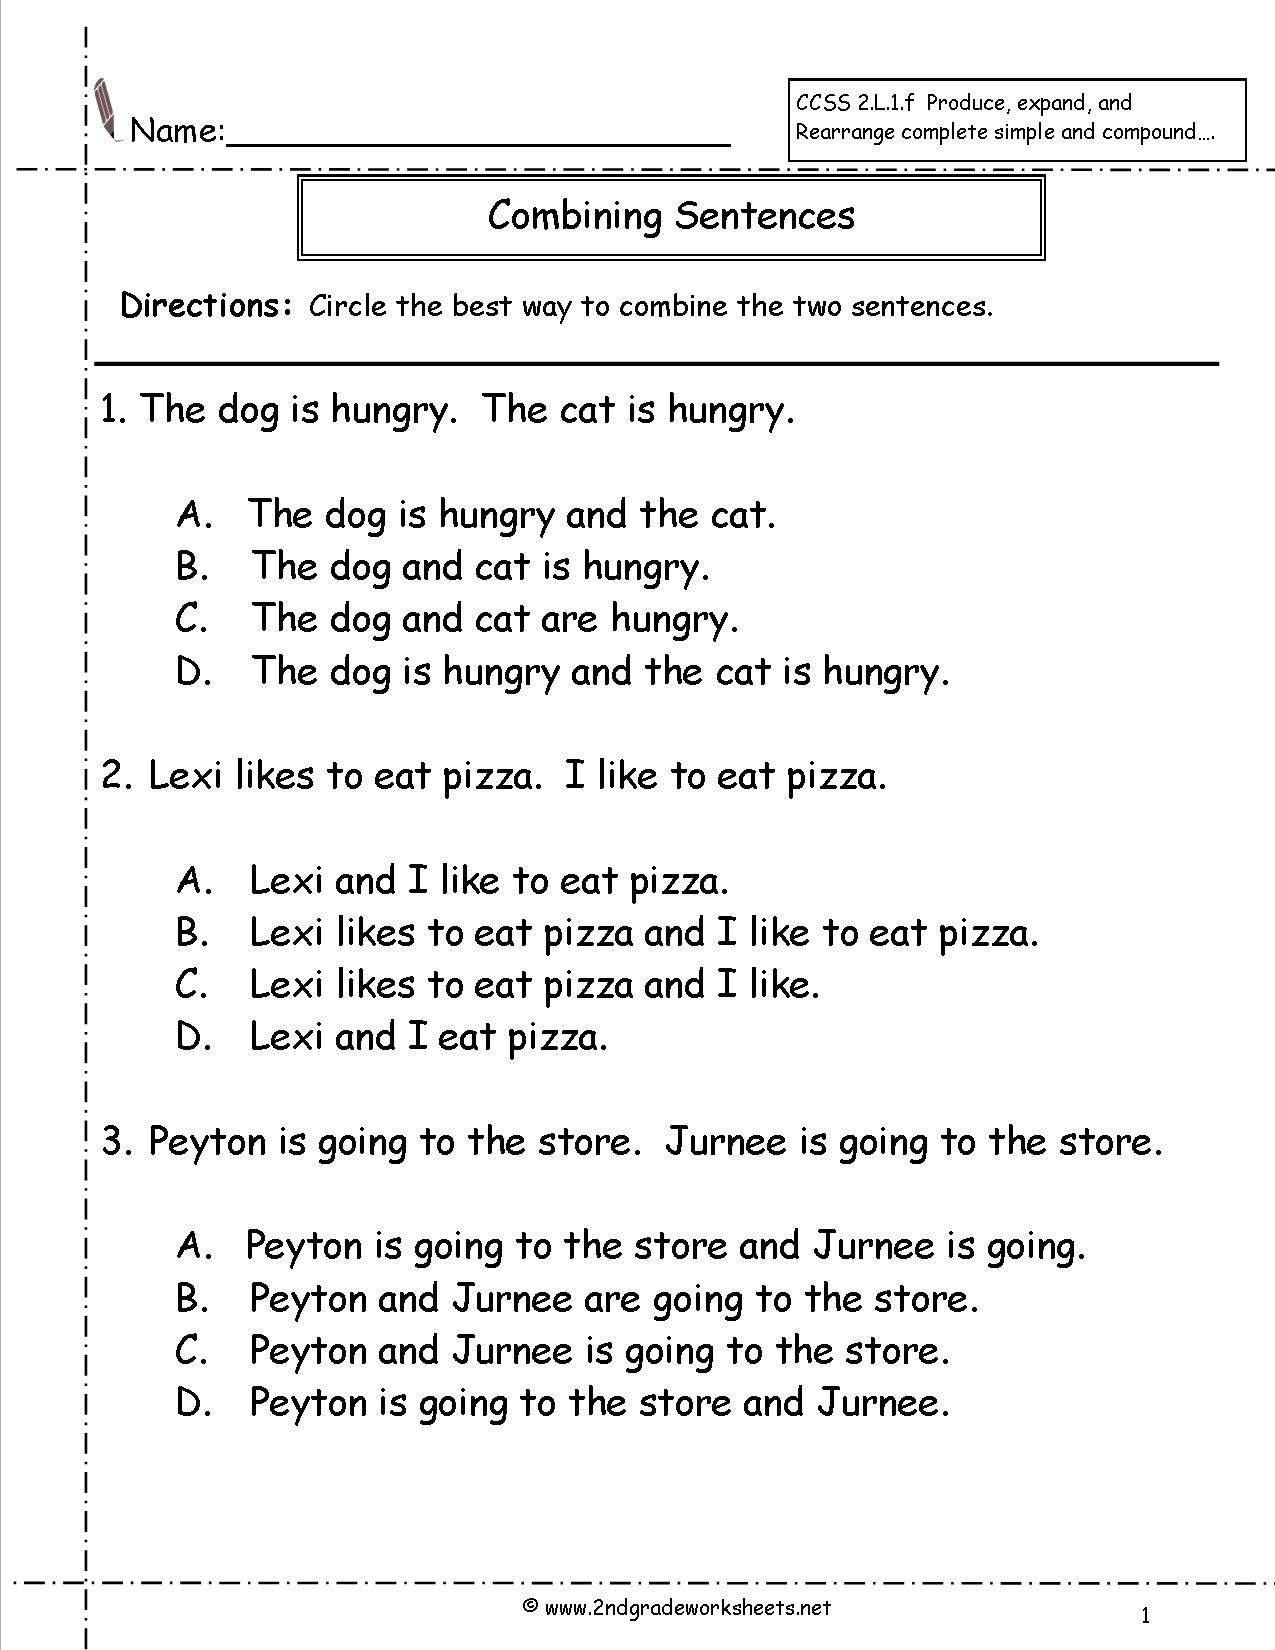 Worksheets Language Arts Worksheets For 3rd Grade combining sentences worksheet katelynns school work pinterest sentenceslanguage artsworksheets